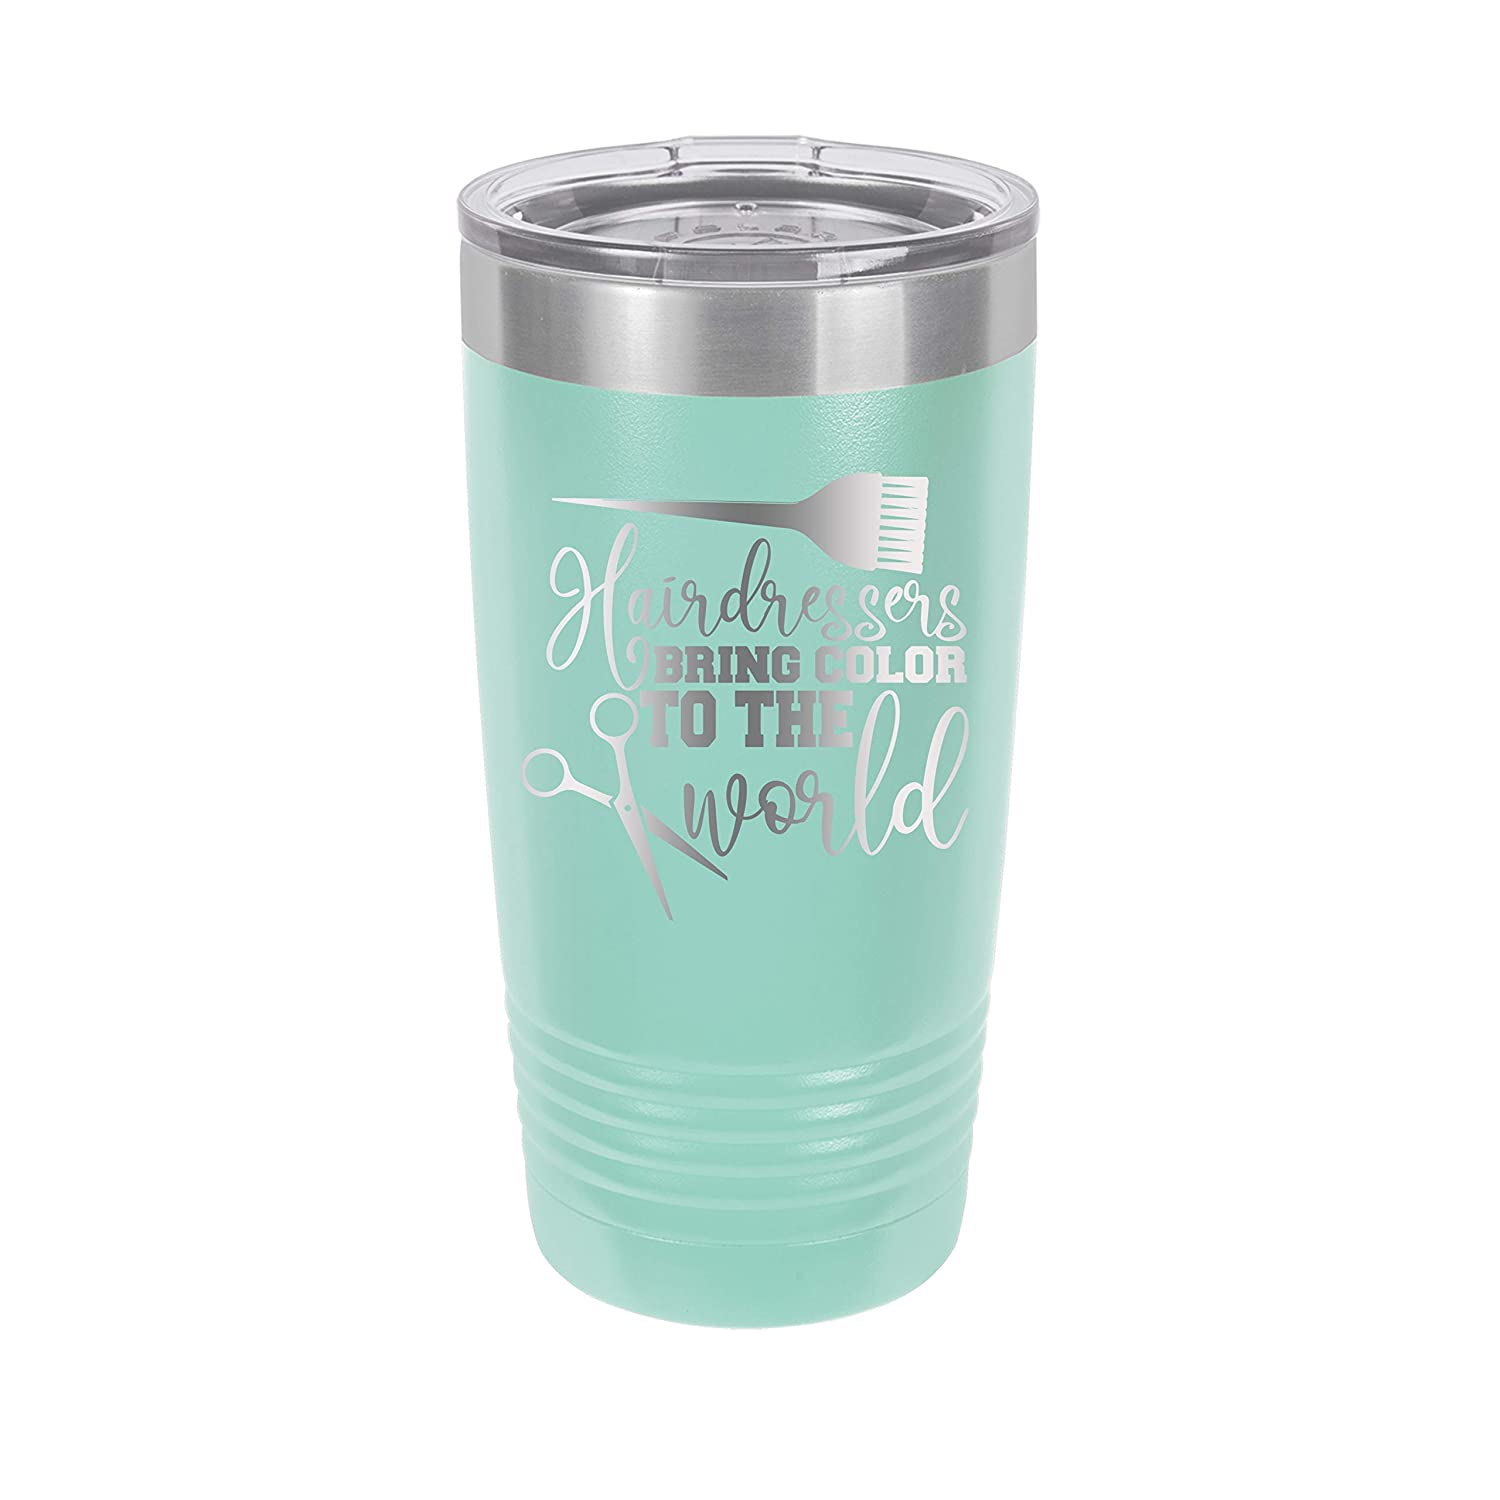 Hairdressers Bring Color to the World Turquoise Engraved Insulated Stainless Steel 20 oz Tumbler